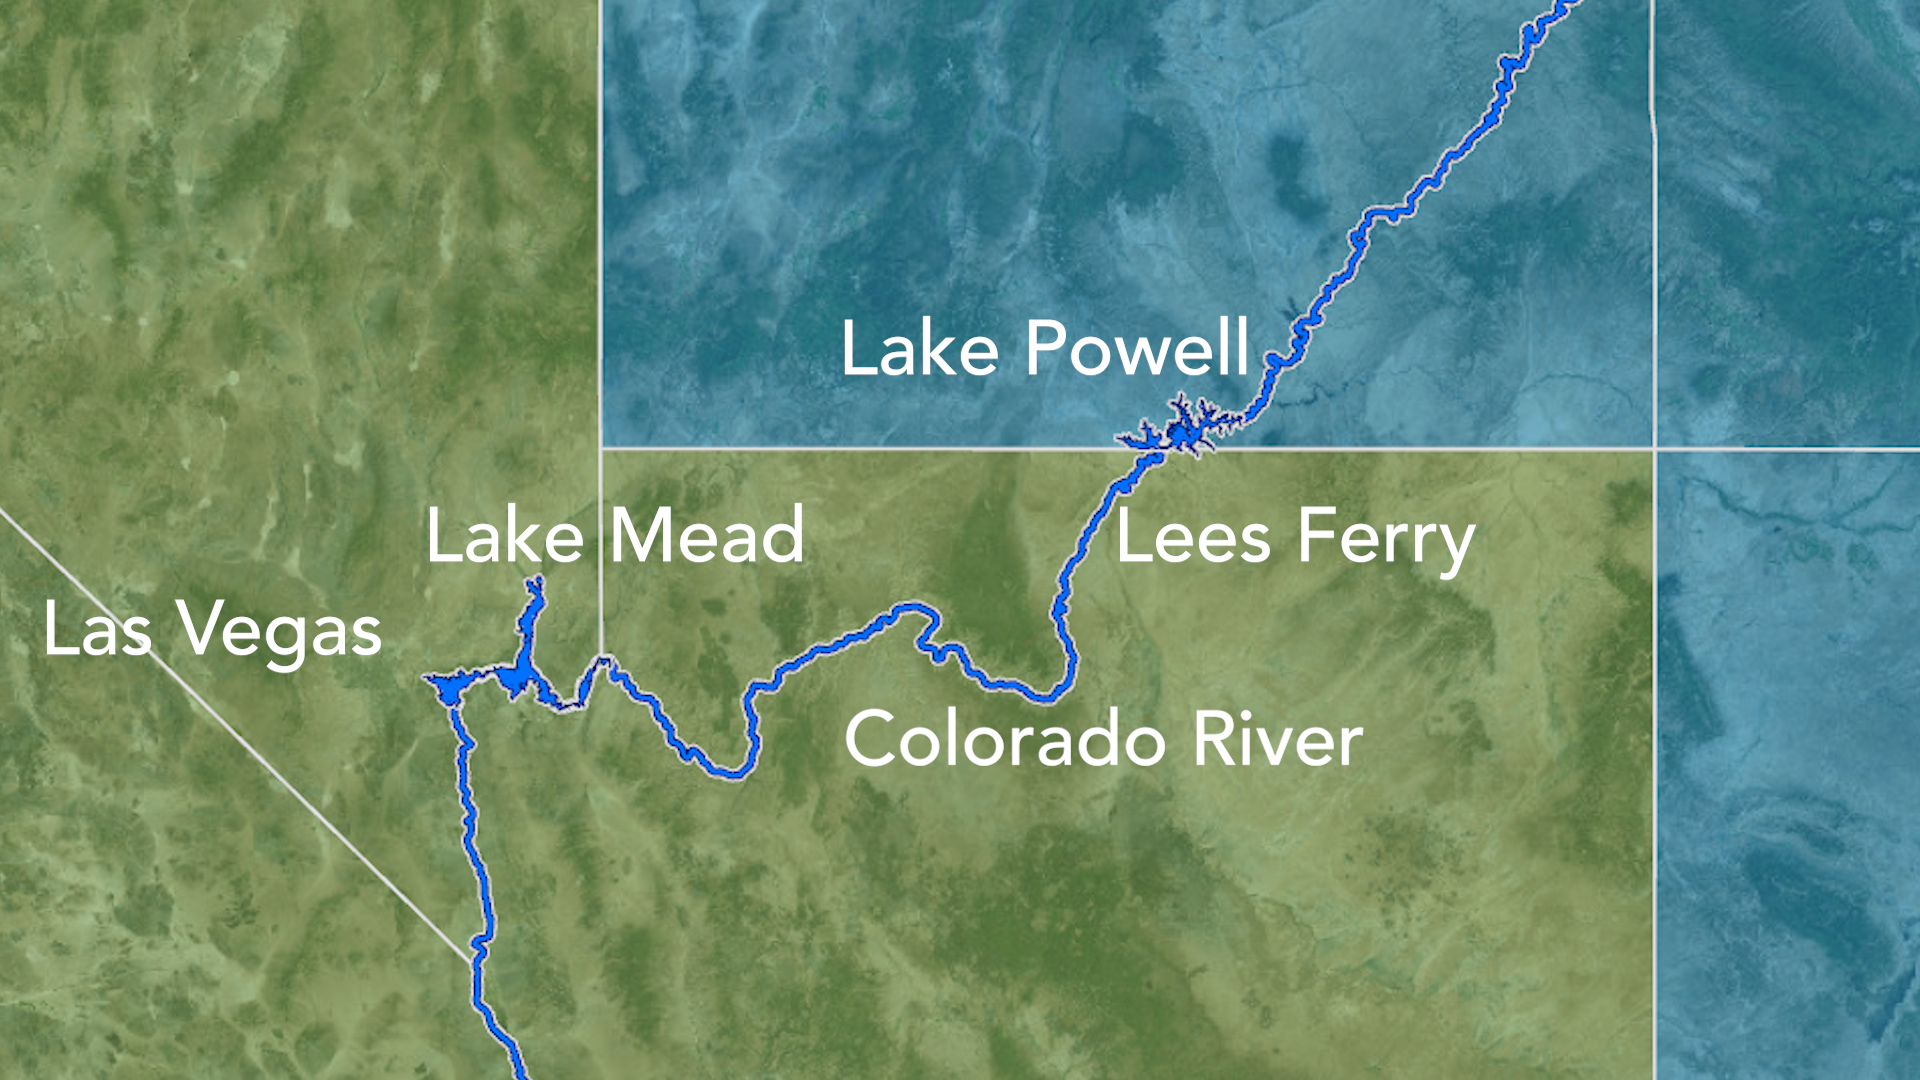 Lees Ferry, AZ is the location where water is measured under terms set forth in the 1922 Colorado River Compact.